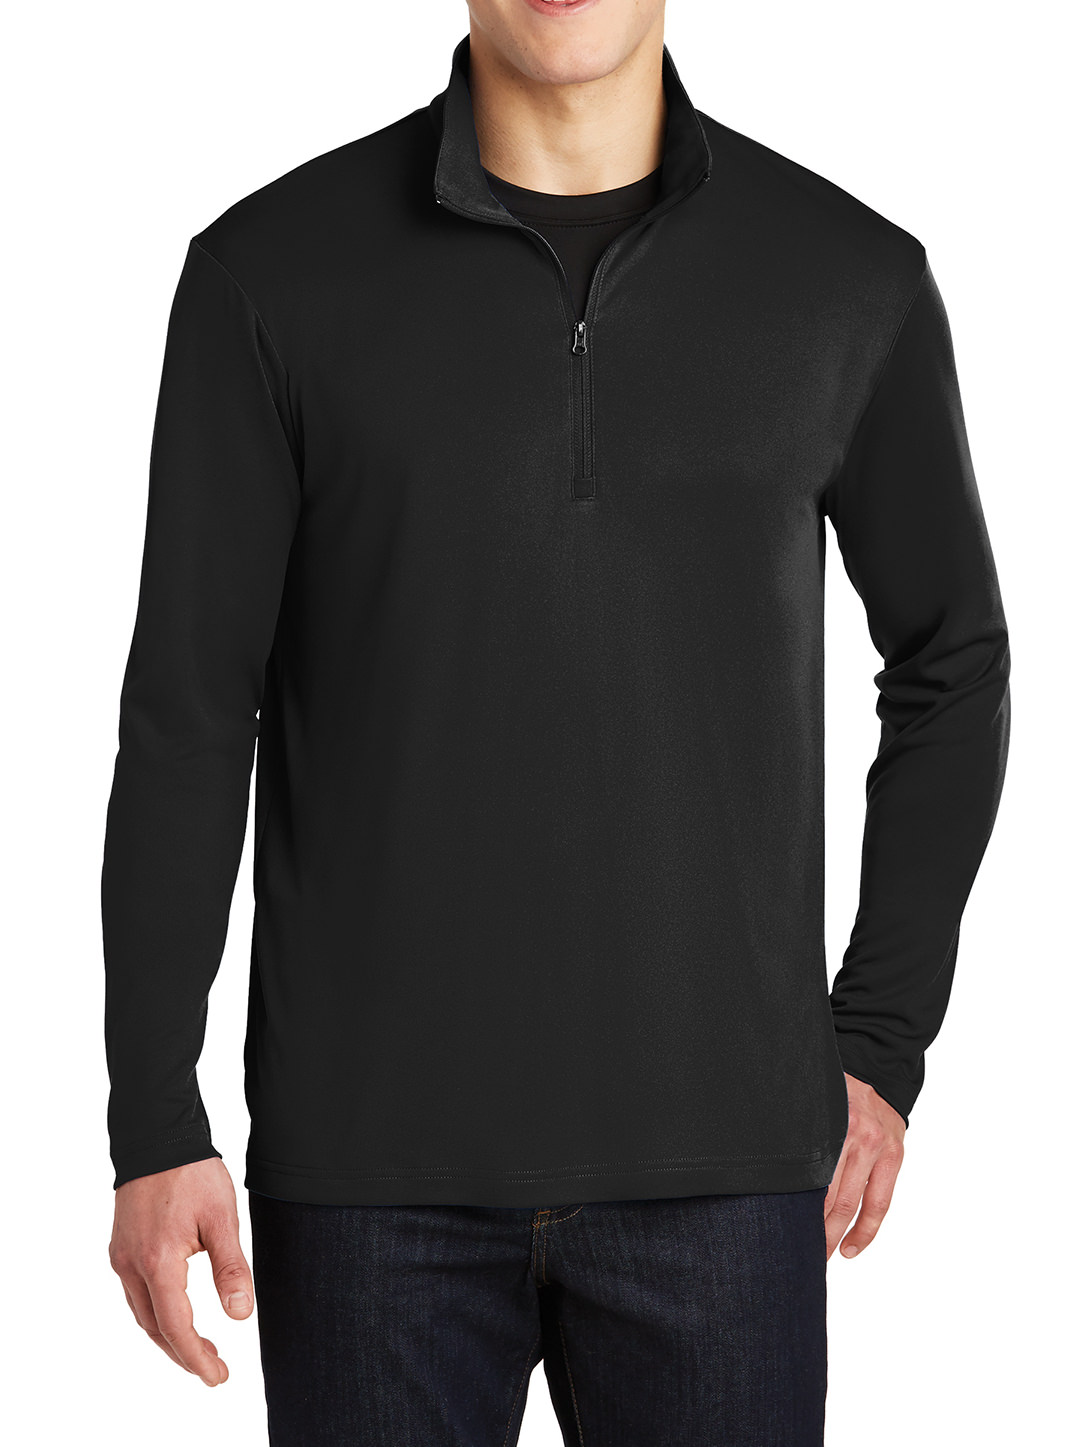 Mafoose Men's Long Sleeves PosiCharge Competitor Cadet Collar 1/4-Zip Pullover Black X-Small